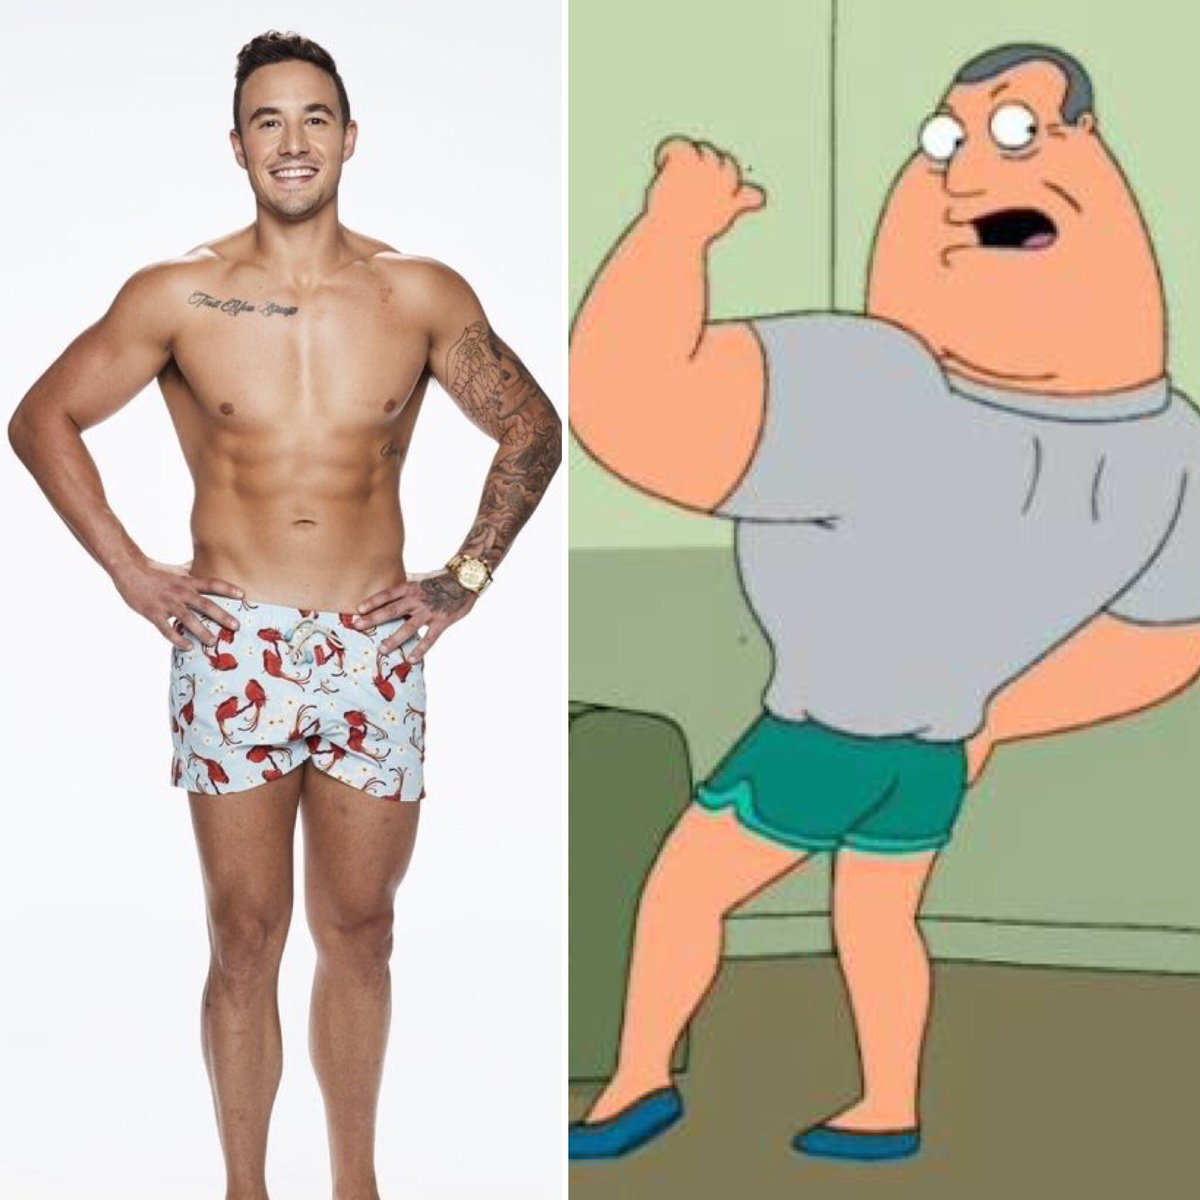 So confused. Grant's shorts getting smaller by the second 🤣 #loveislandau https://t.co/KwwlCOoFOl